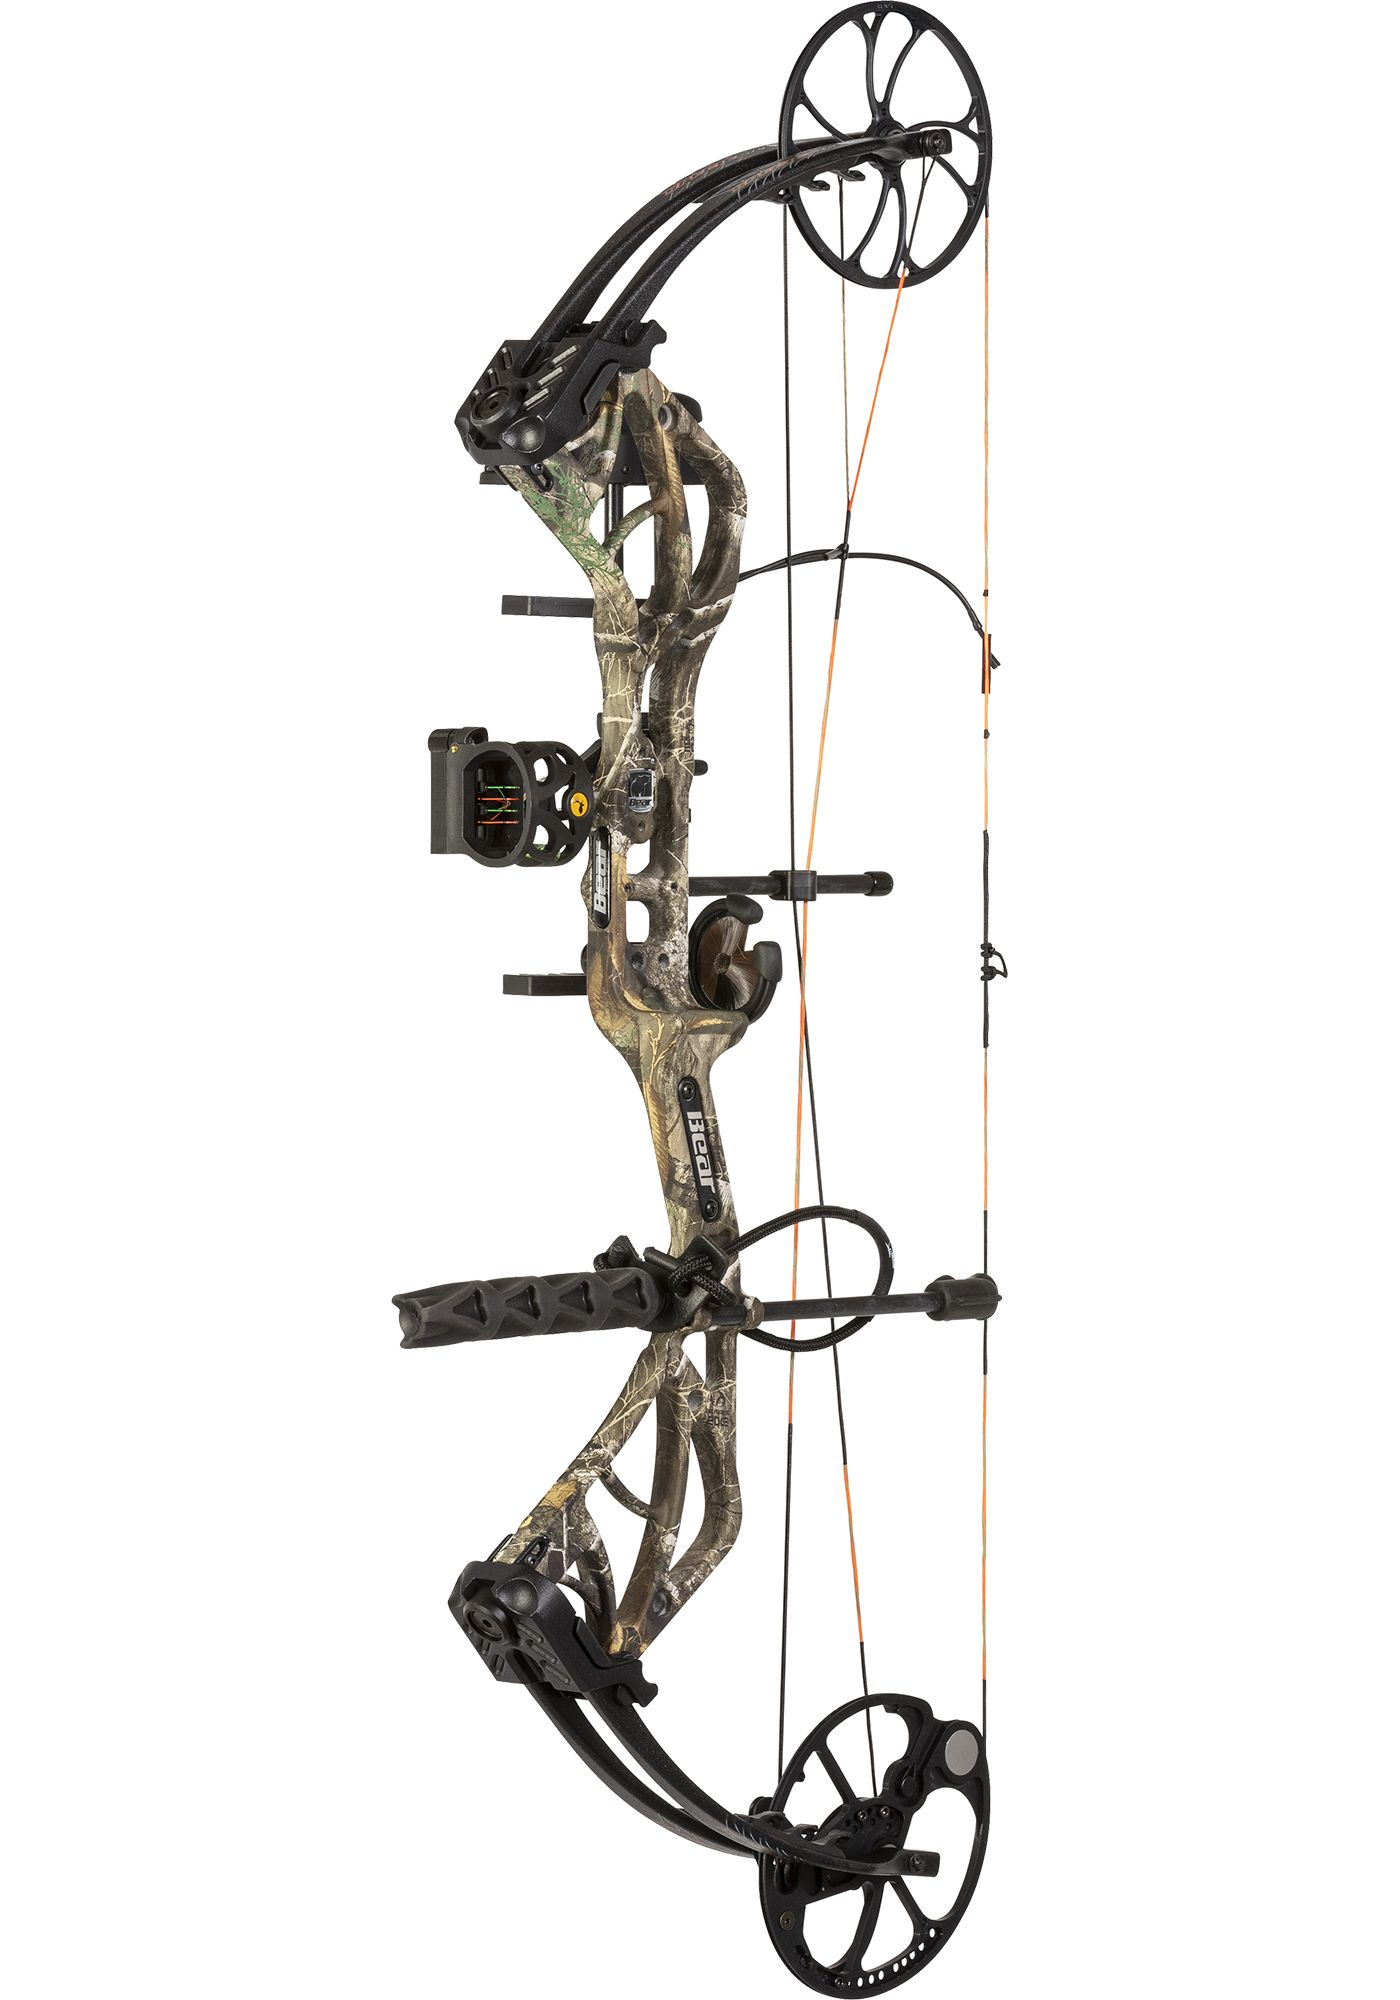 Bear Archery Species LD RTH Compound Bow Package